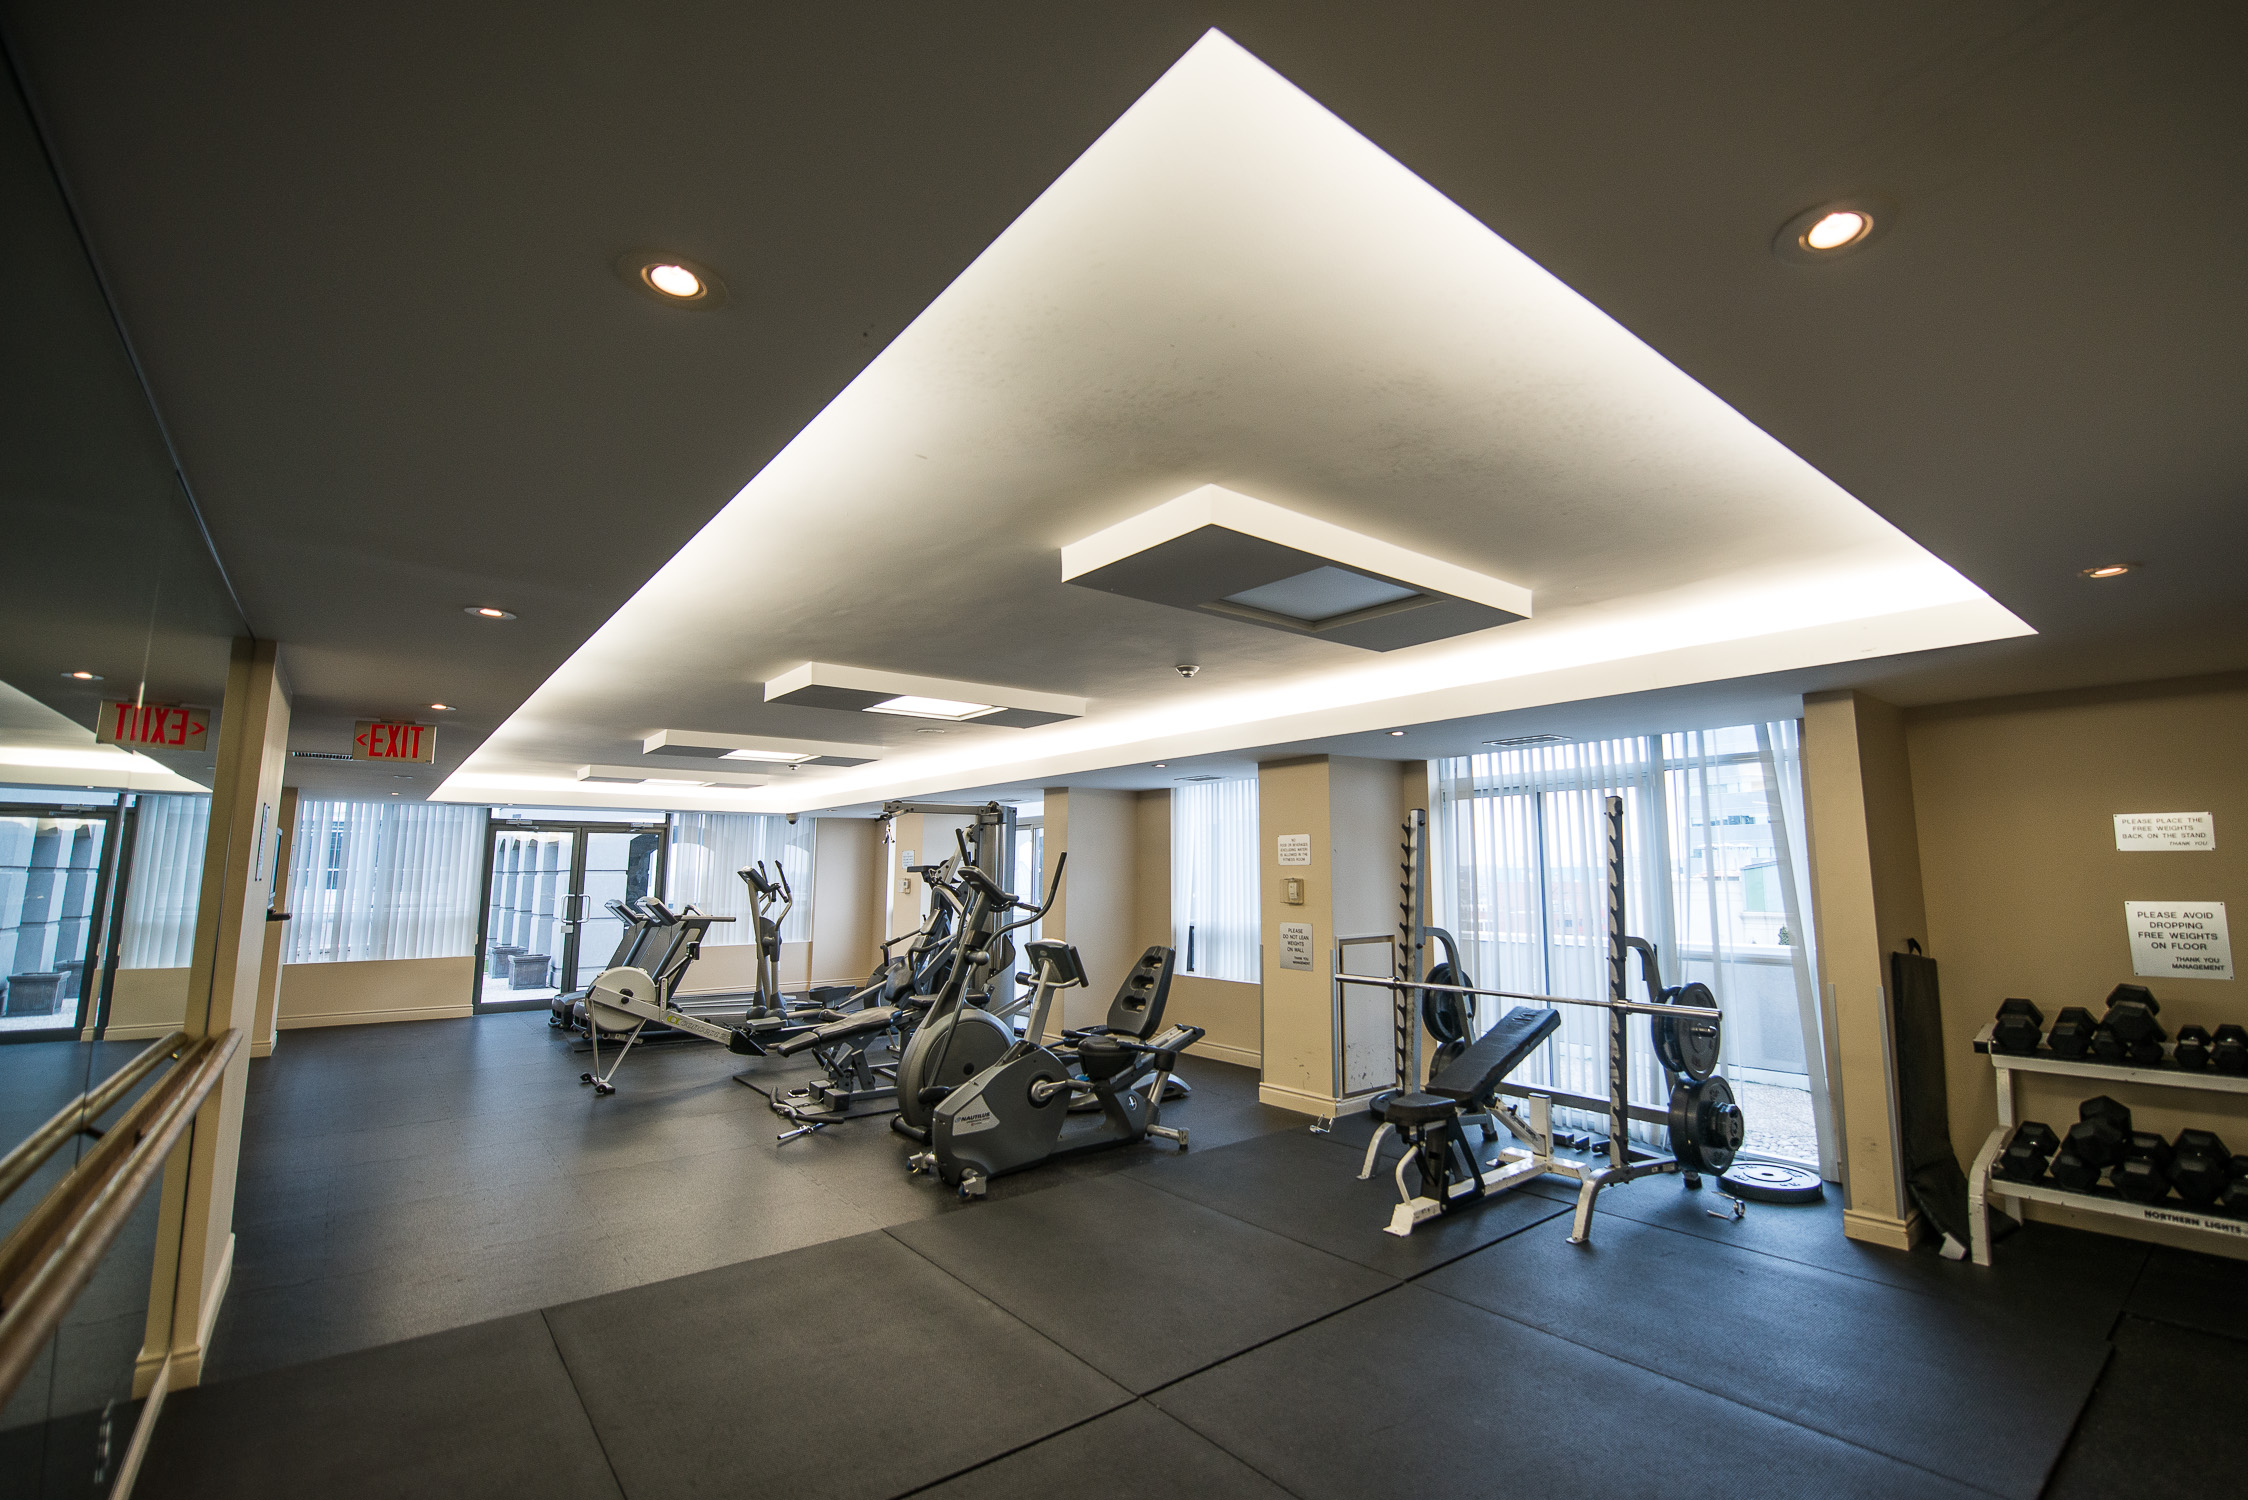 furnished apartments toronto university plaza fitness centre